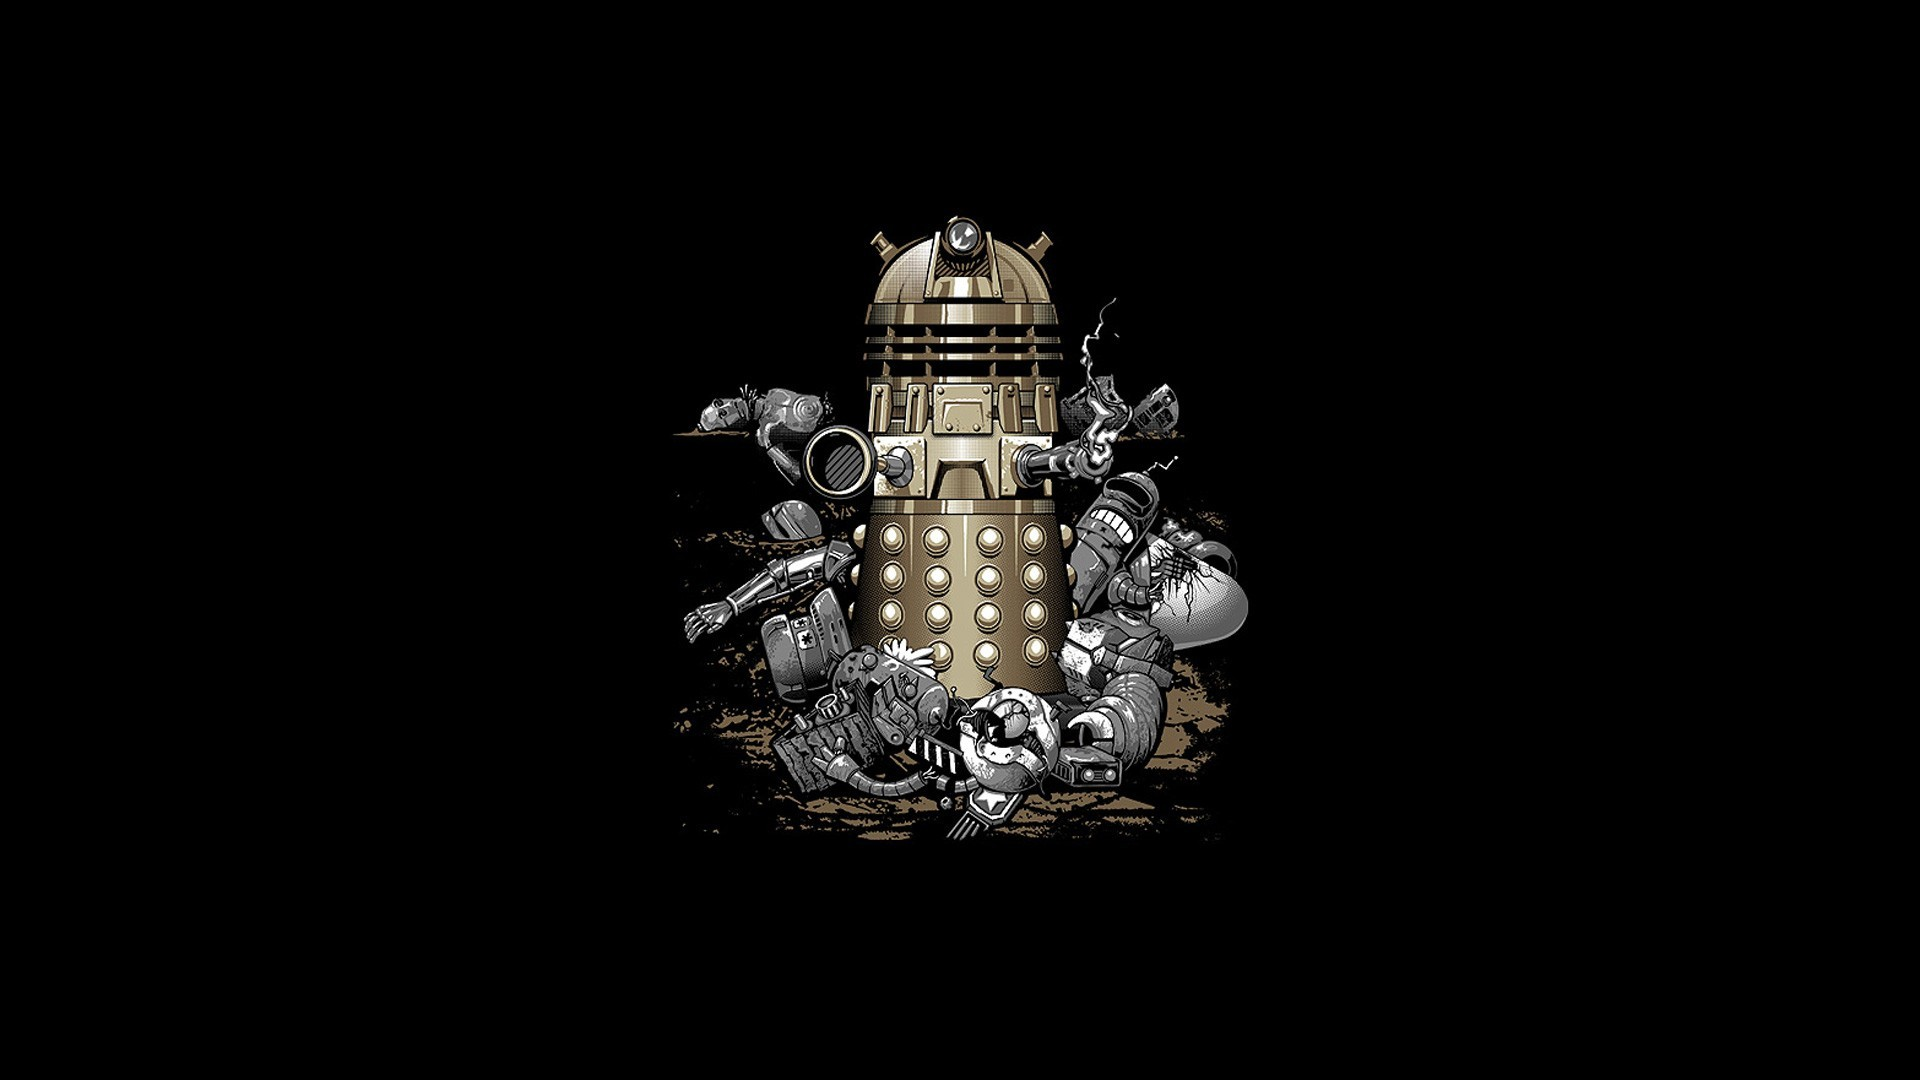 137 Doctor Who Wallpapers!